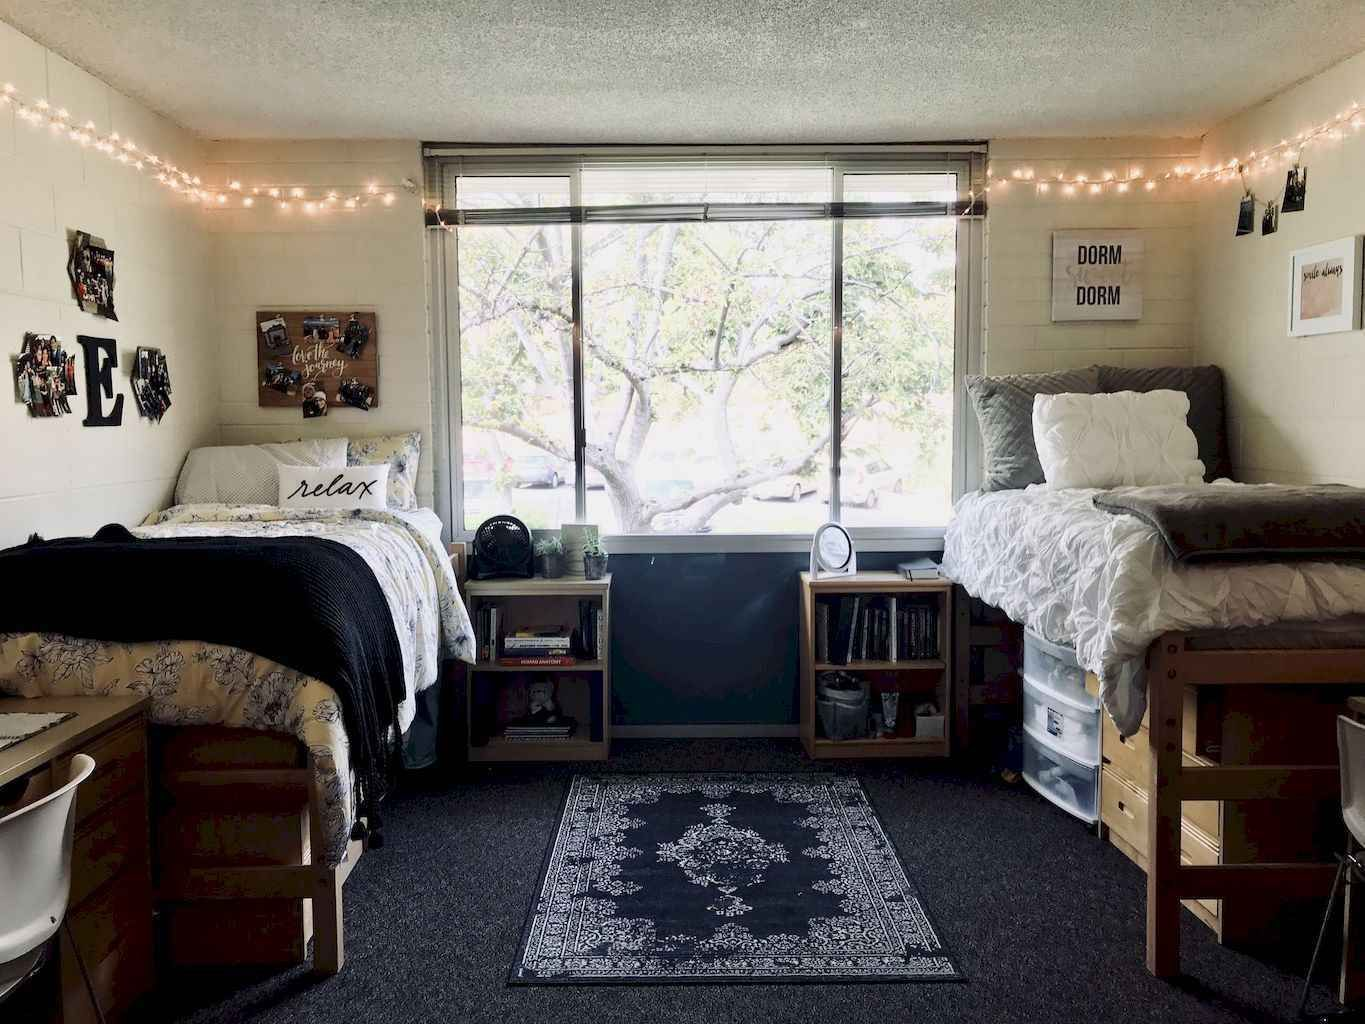 47 College Apartment Decorating Ideas on A Budget in 2020 ...